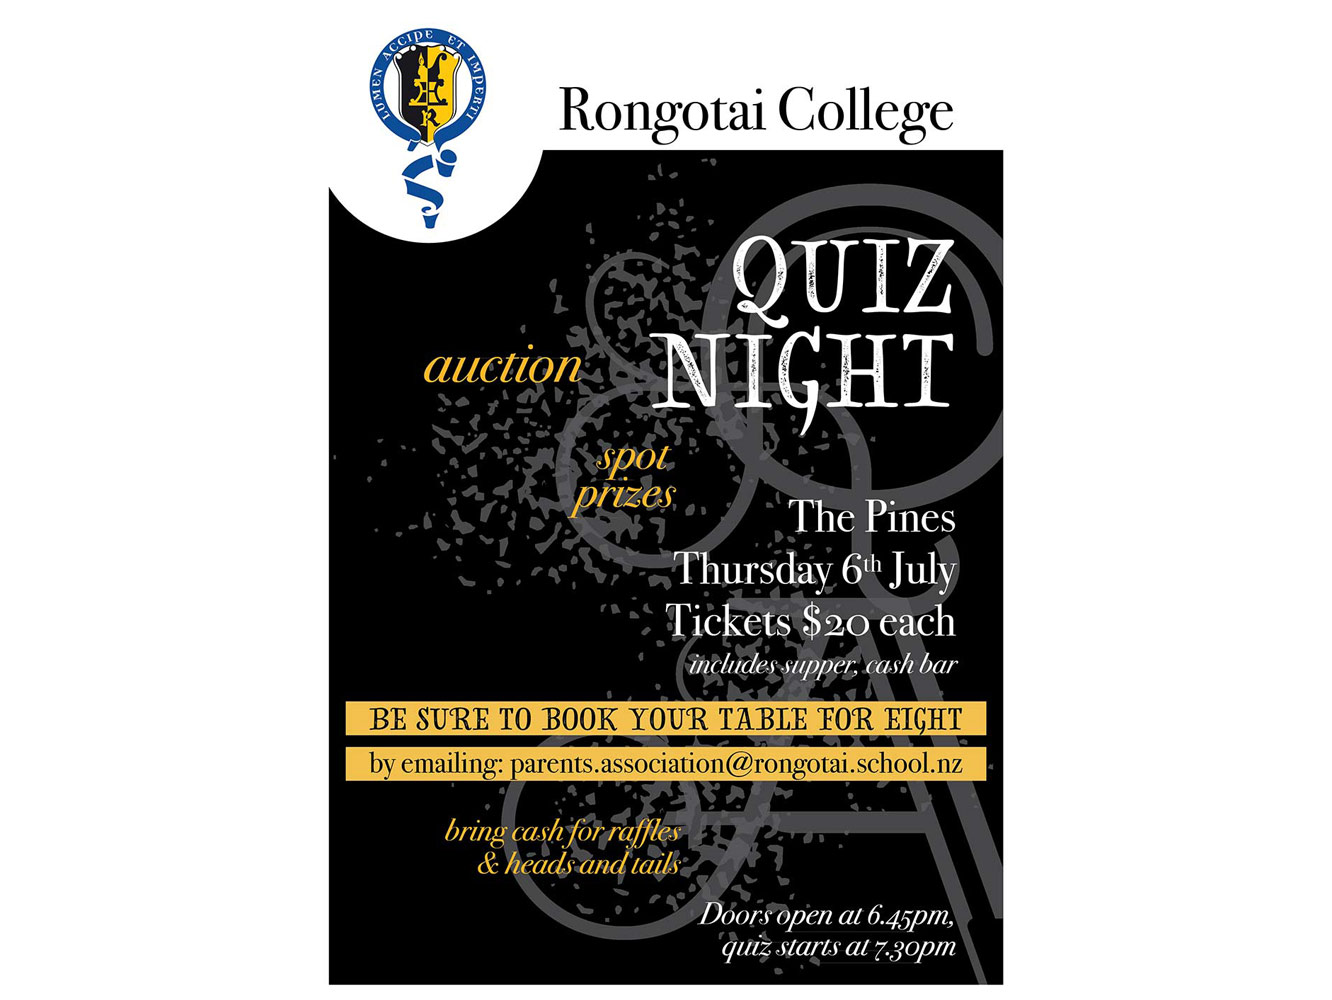 Rongotai College school quiz night flyer – Bunkhouse graphic design